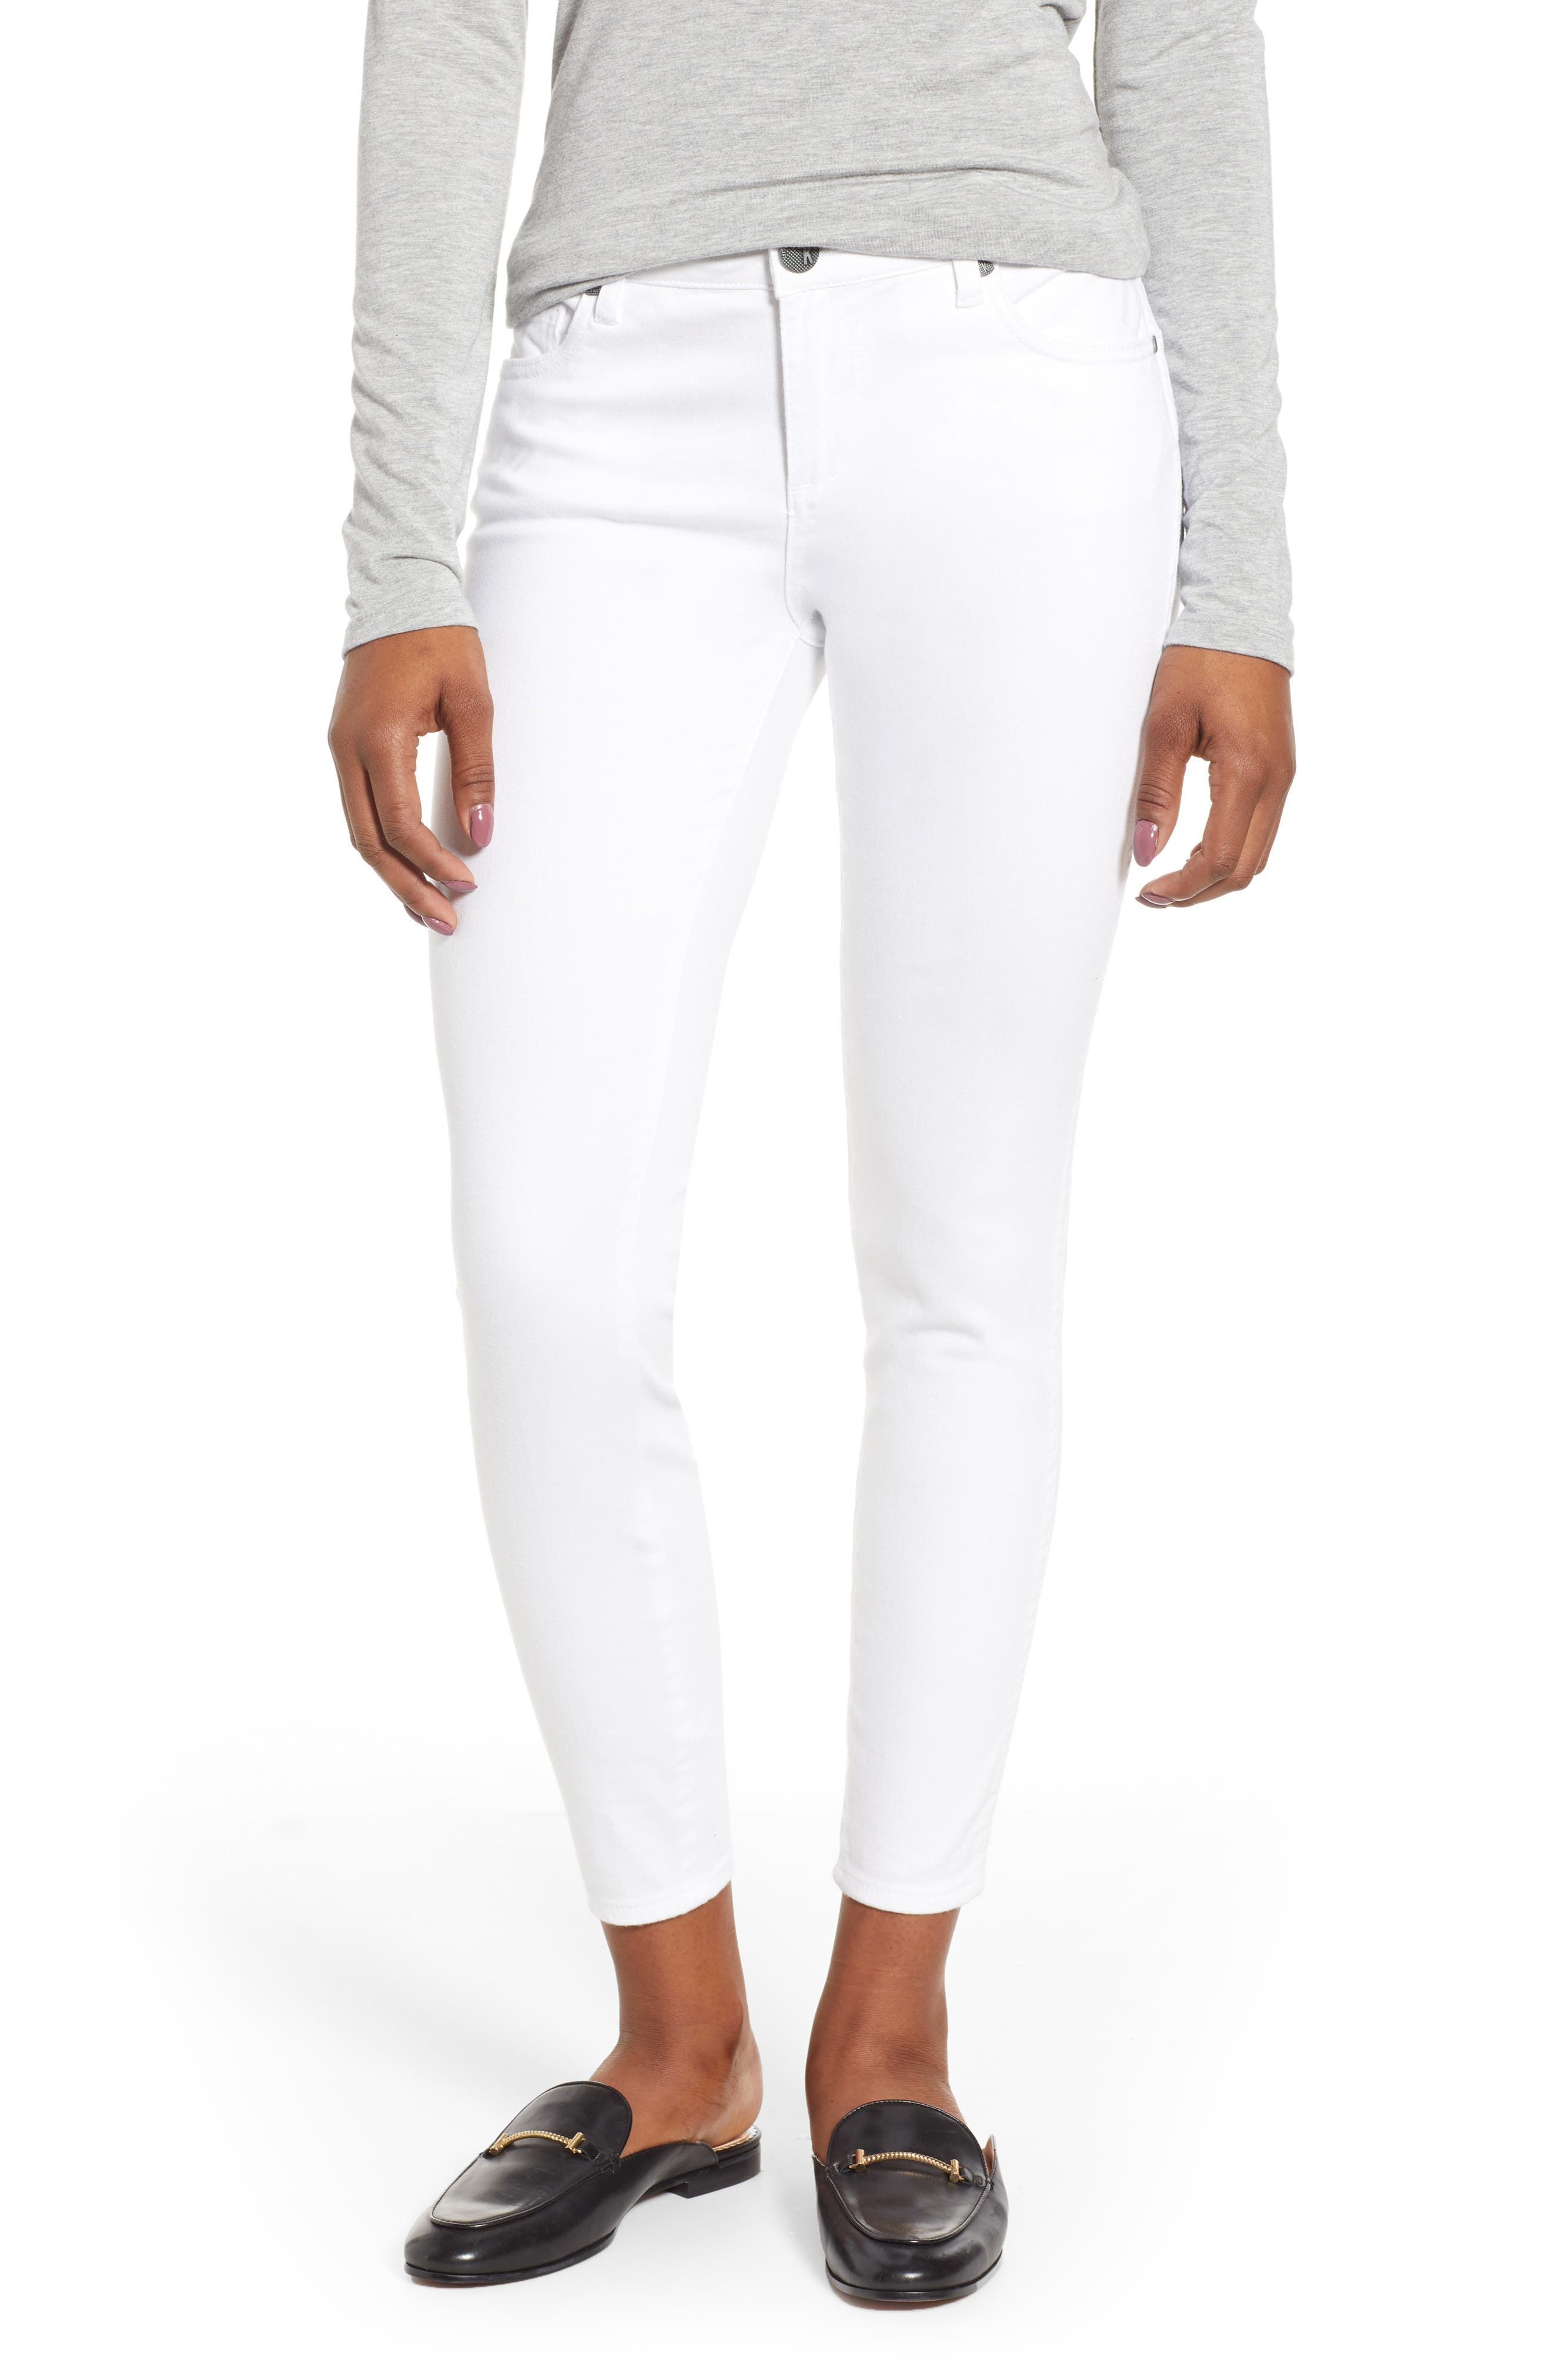 KUT FROM THE KLOTH, Donna Ankle Skinny Jeans, Main thumbnail 1, color, OPTIC WHITE